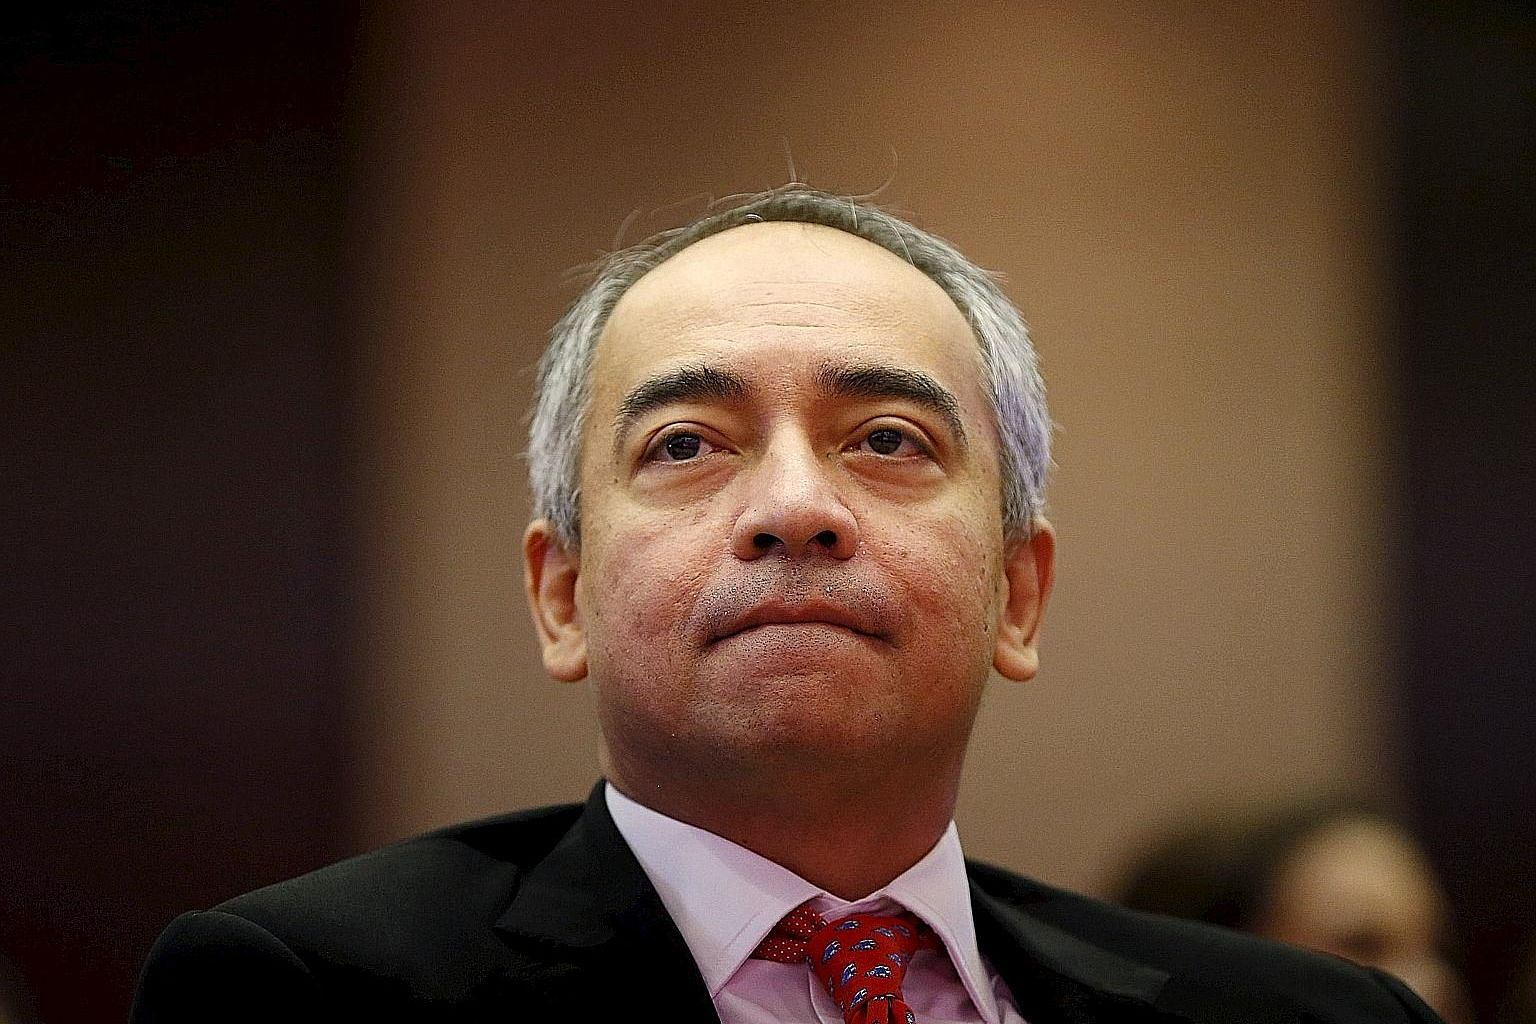 The WSJ said Mr Nazir disbursed the funds to Umno politicians ahead of the 2013 election.